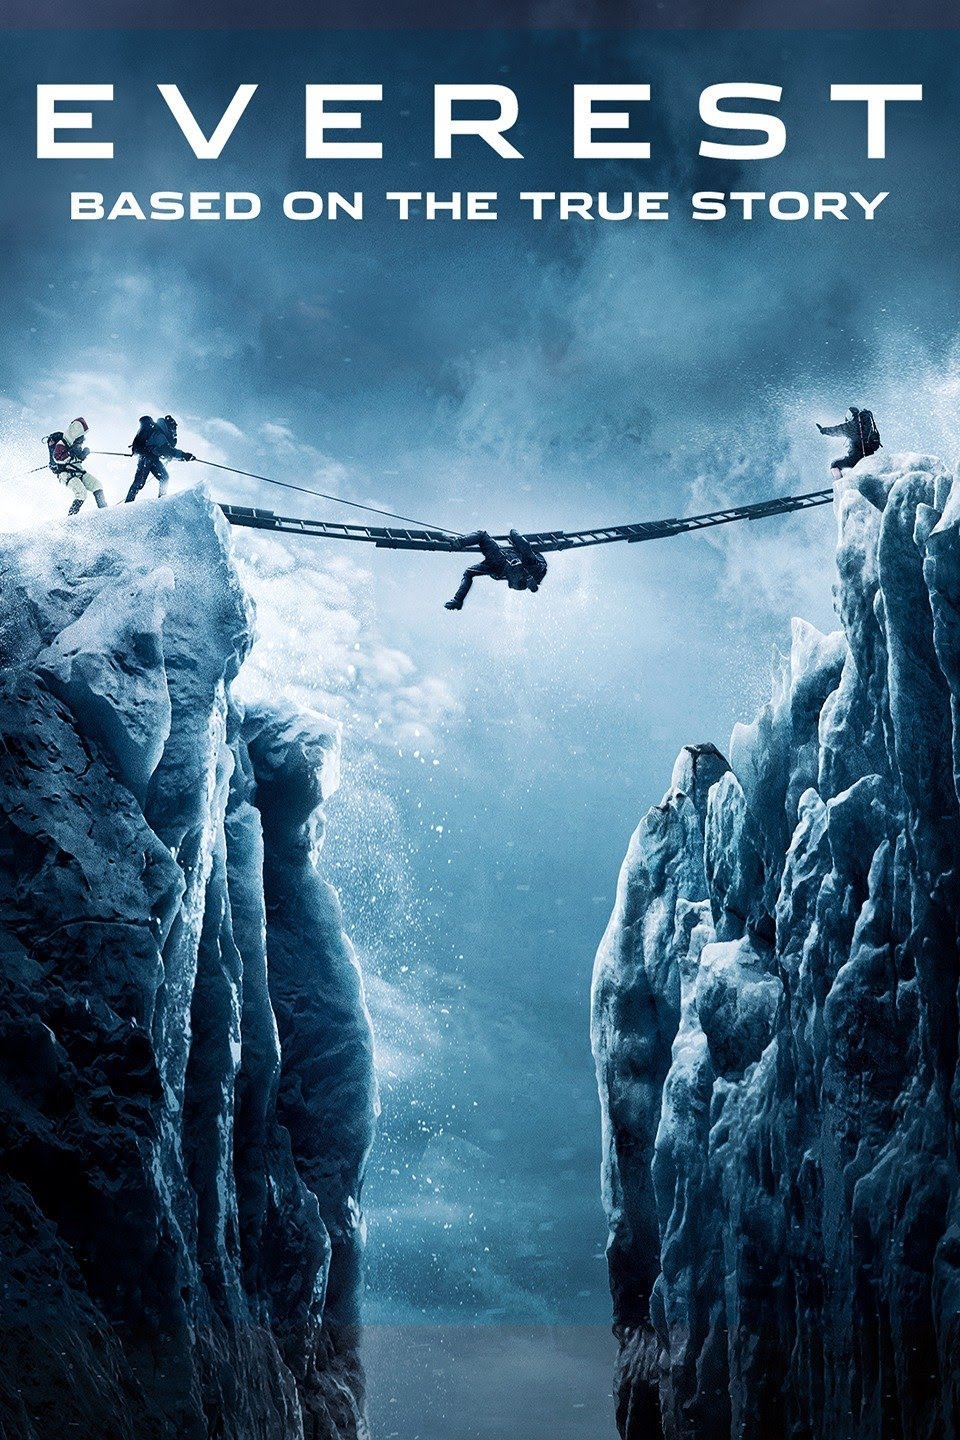 Download Everest (2015) Dual Audio Hindi-English x264 Bluray 6.0 480p | 720p